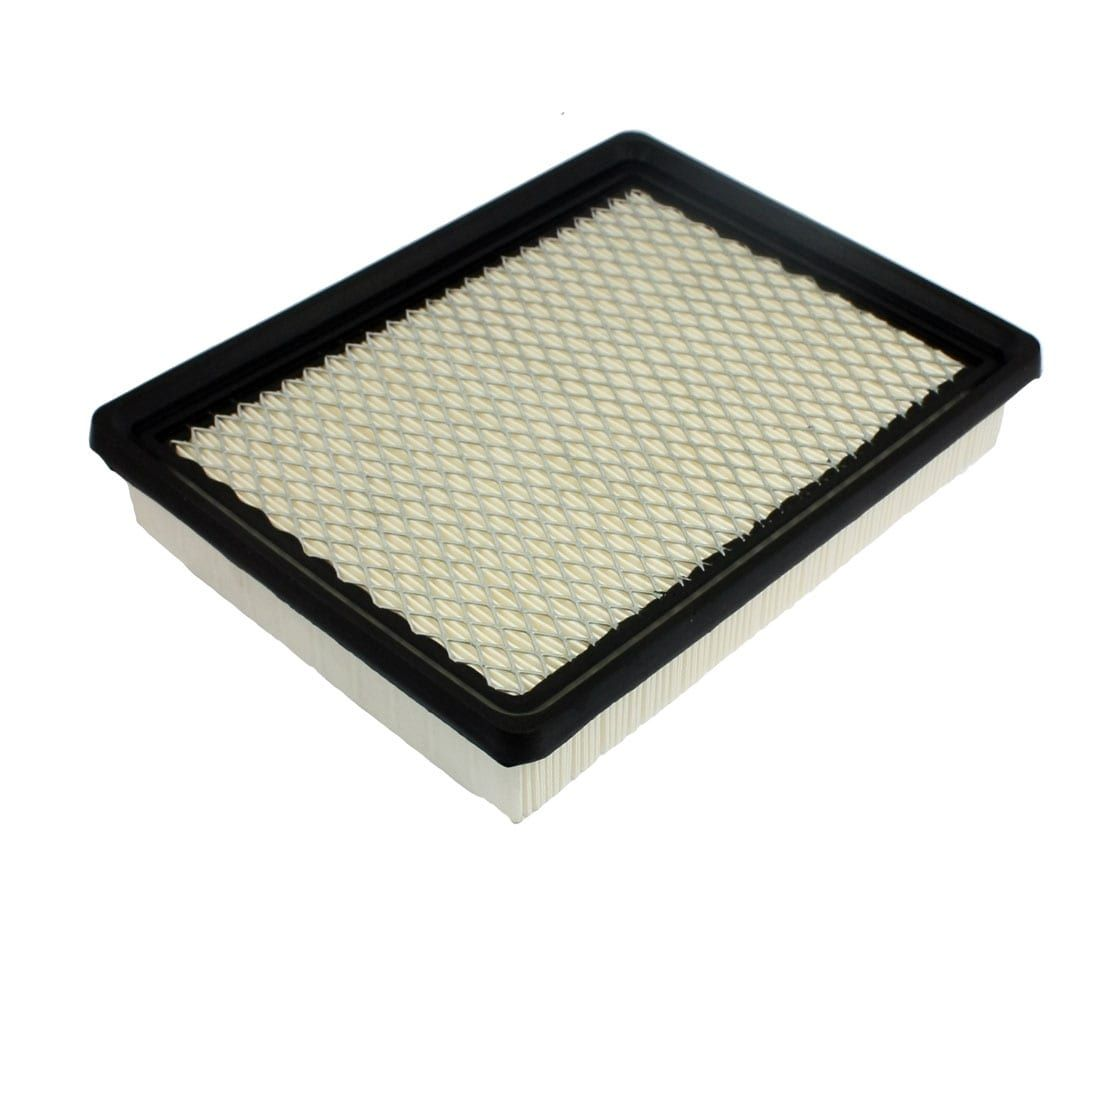 Unique Bargains A1208C Air Filter Cleaner for Chevrolet Trans Sport 1994-1996, Grey metal